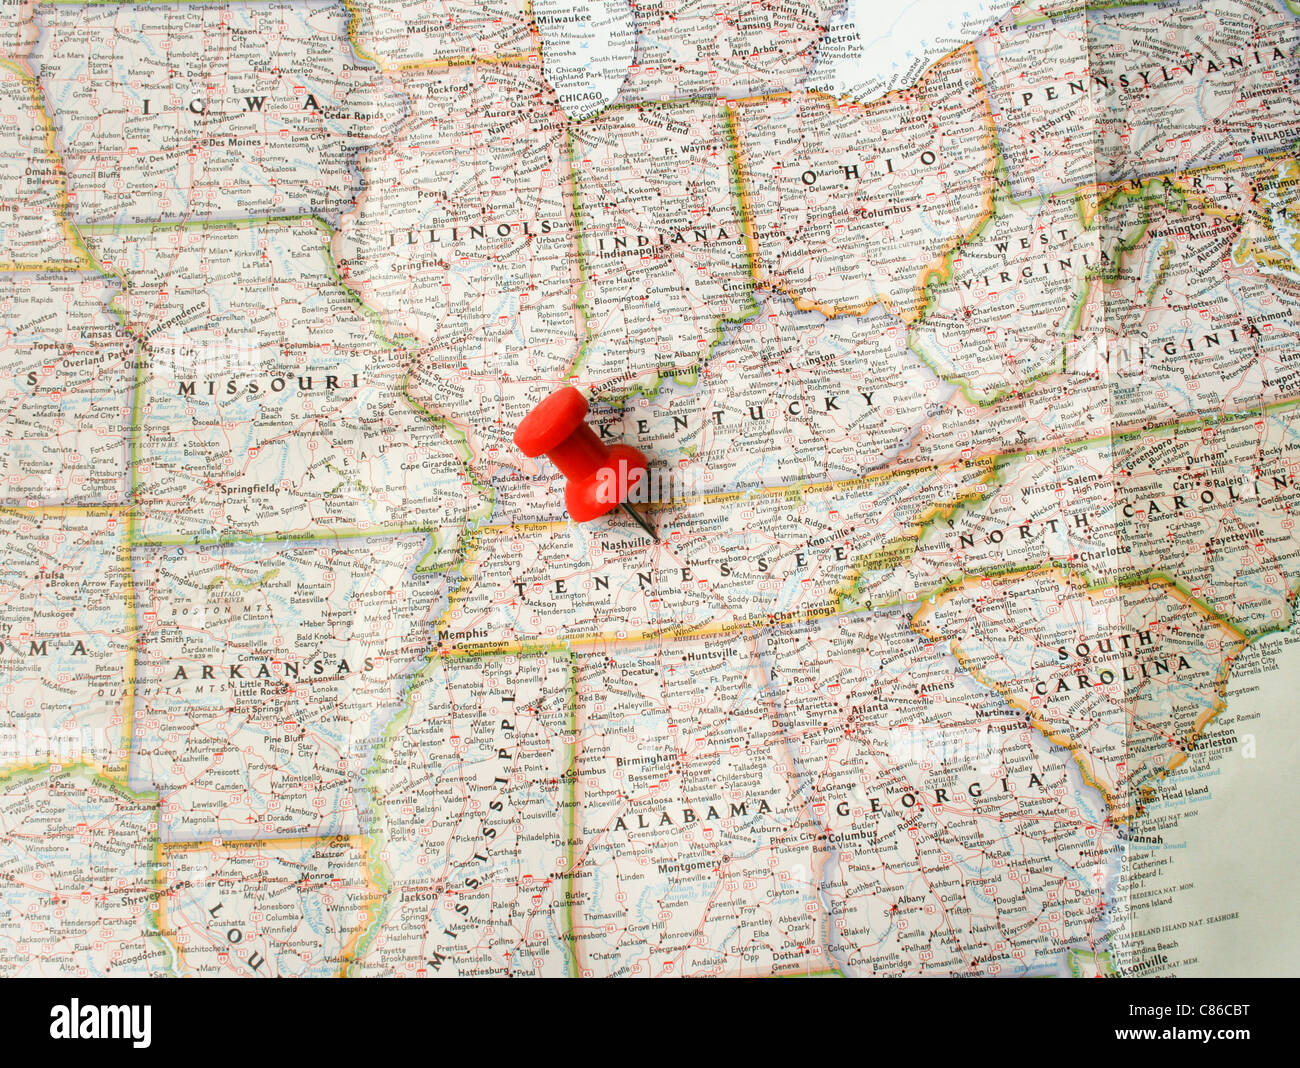 Red pin on map of USA pointing at Nashville in Tennessee Stock